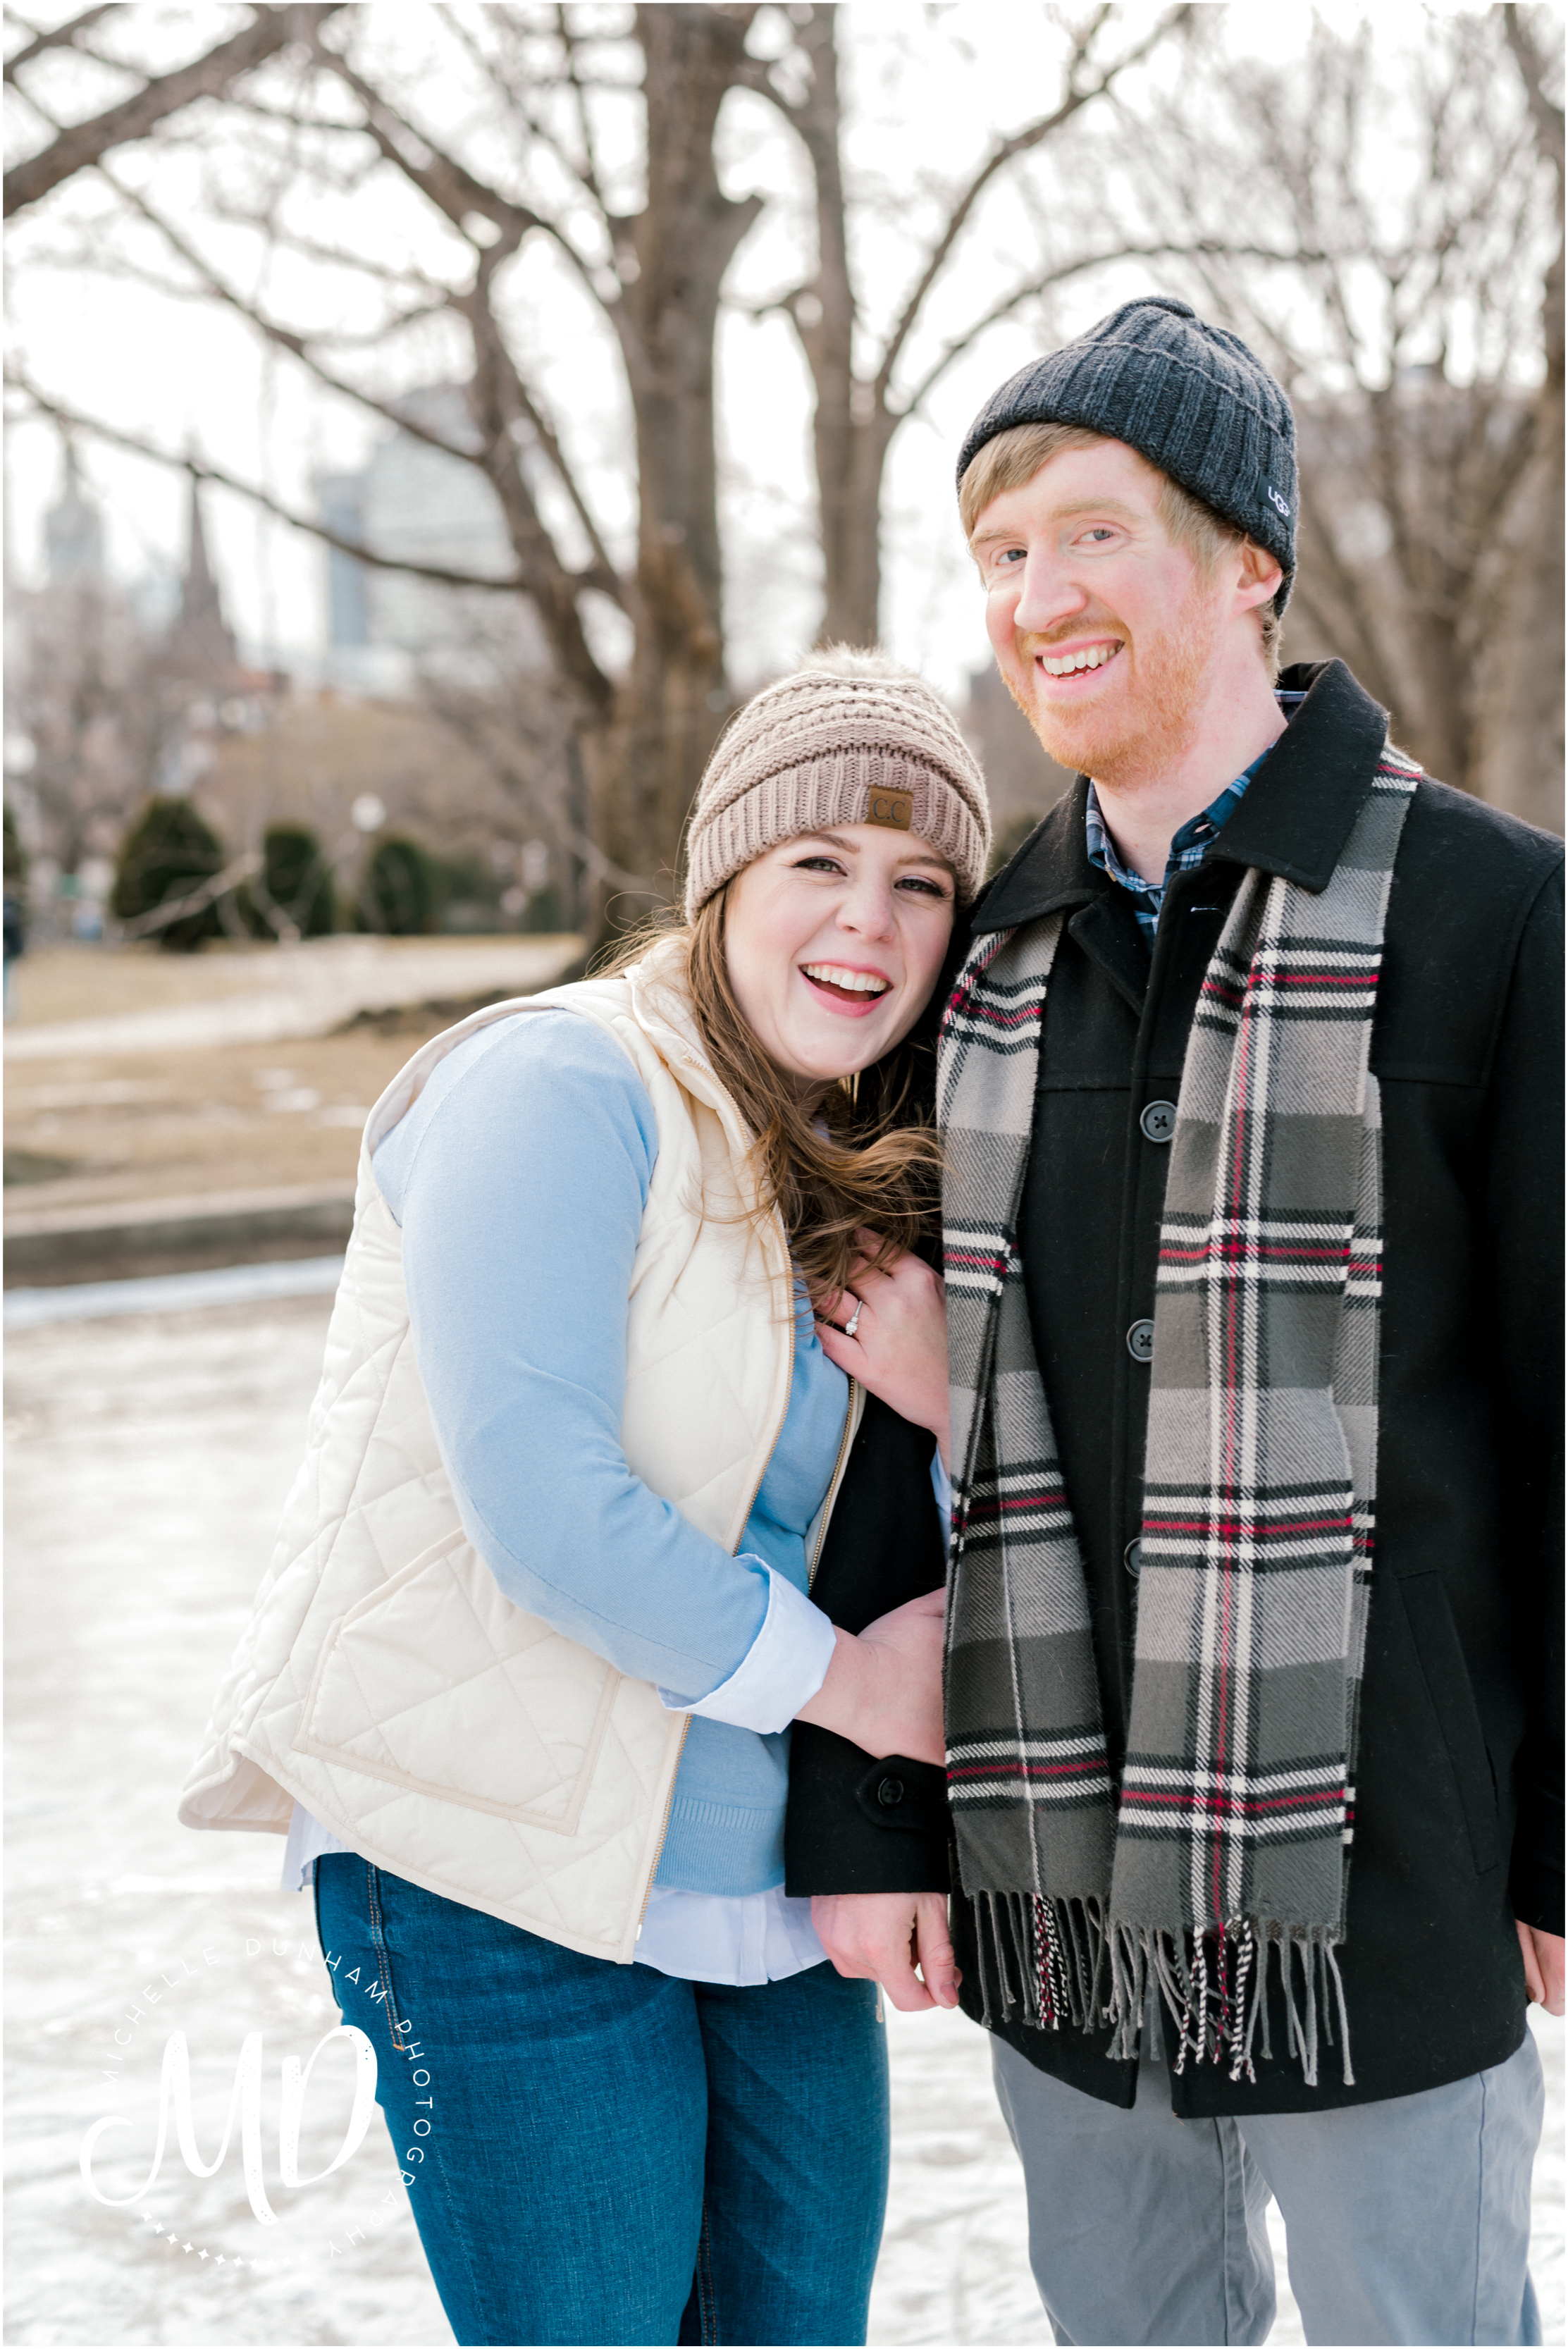 Boston-Public-Garden-Winter-Engagement-Ice-Skating-10.jpg